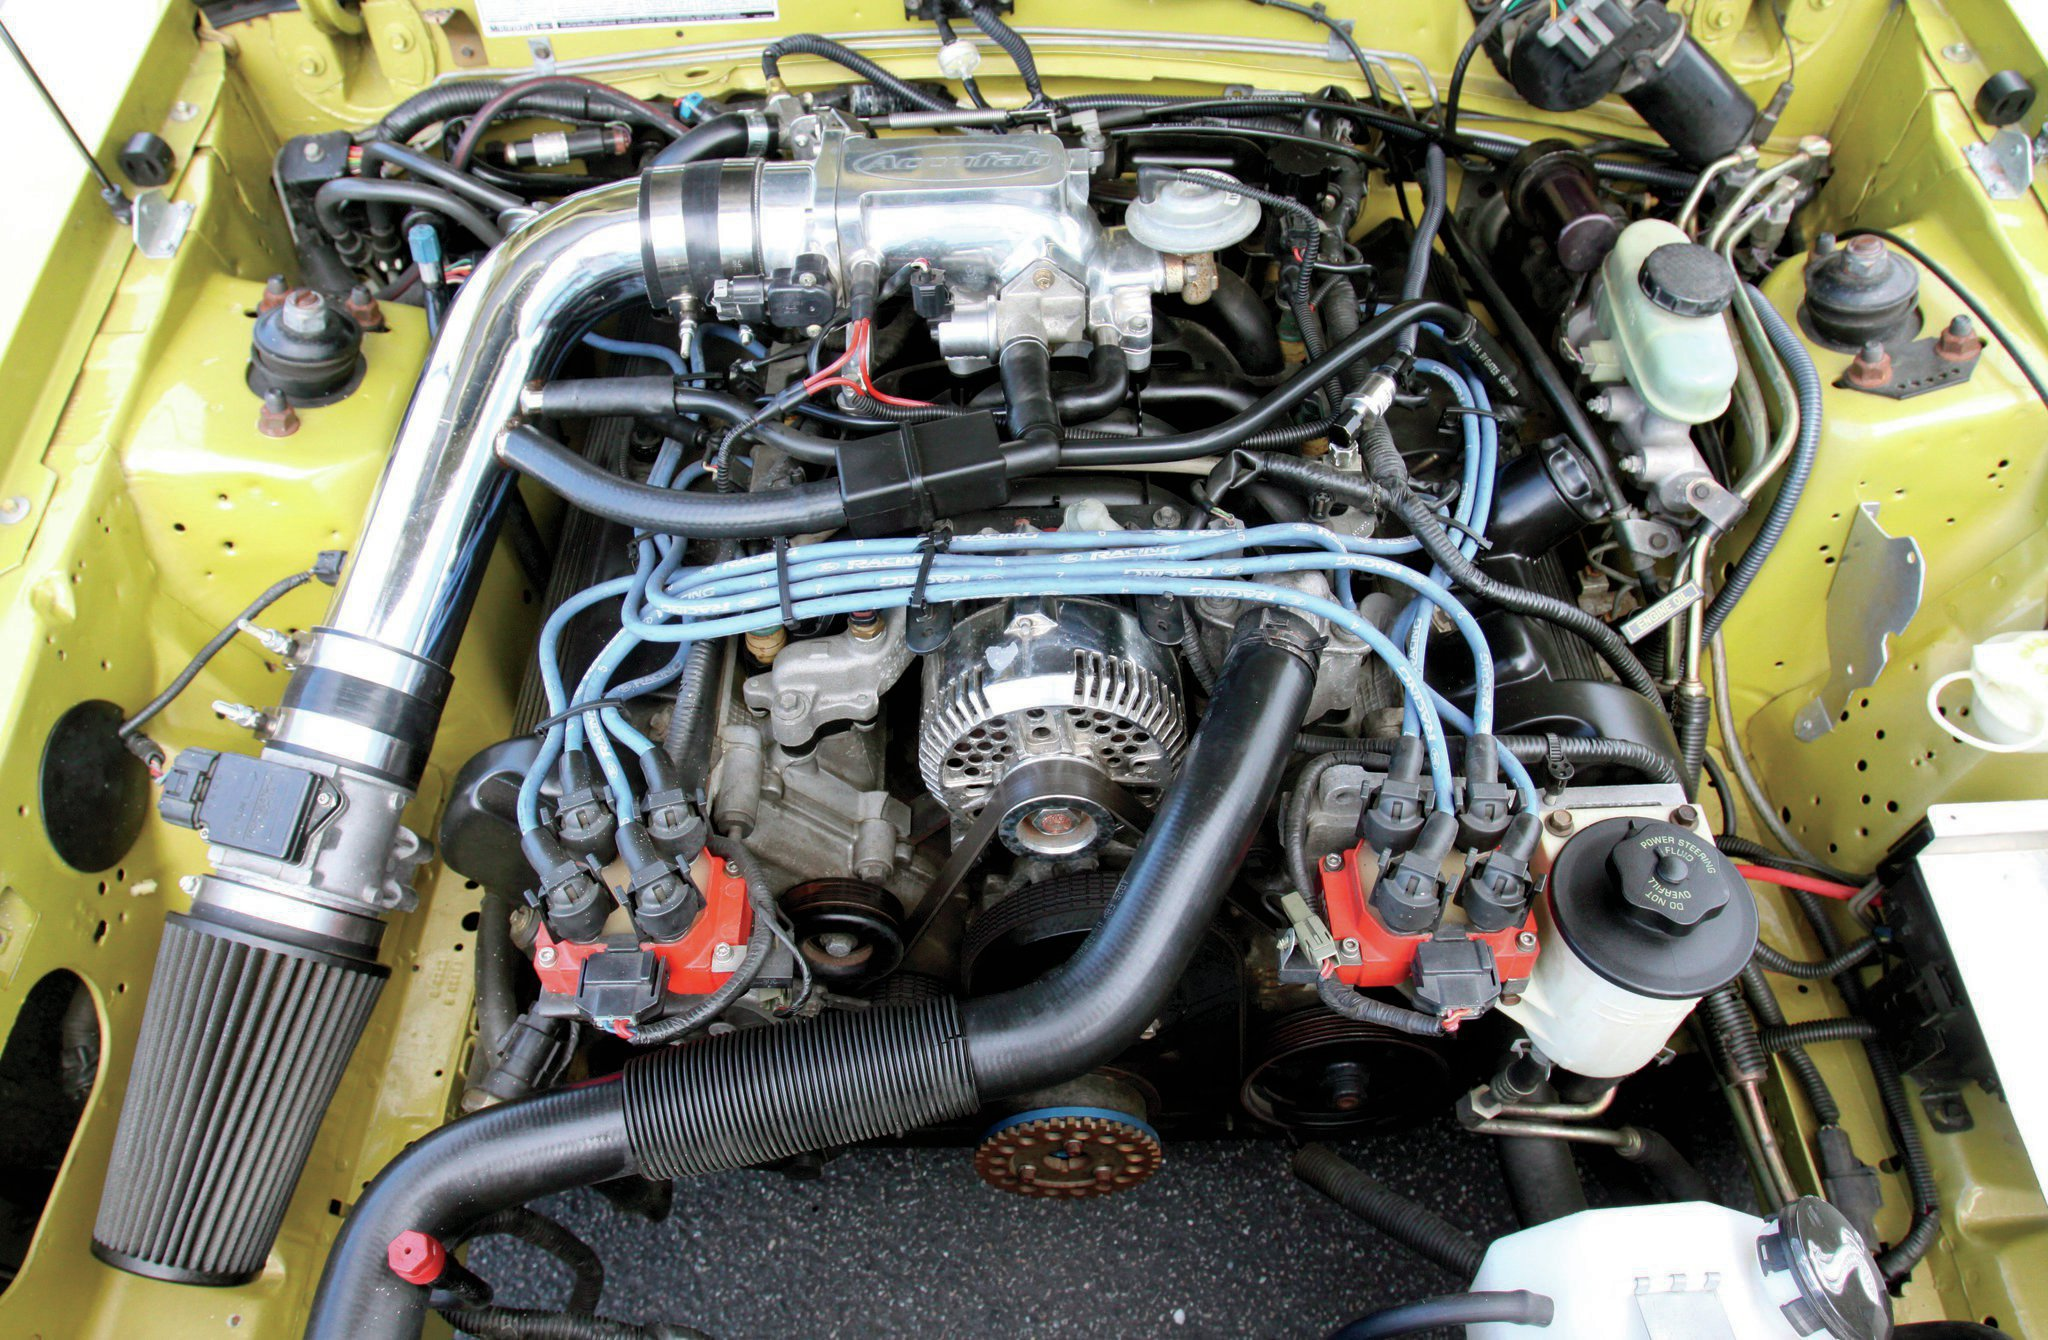 1987 Ford Mustang Lx Coupe Engine